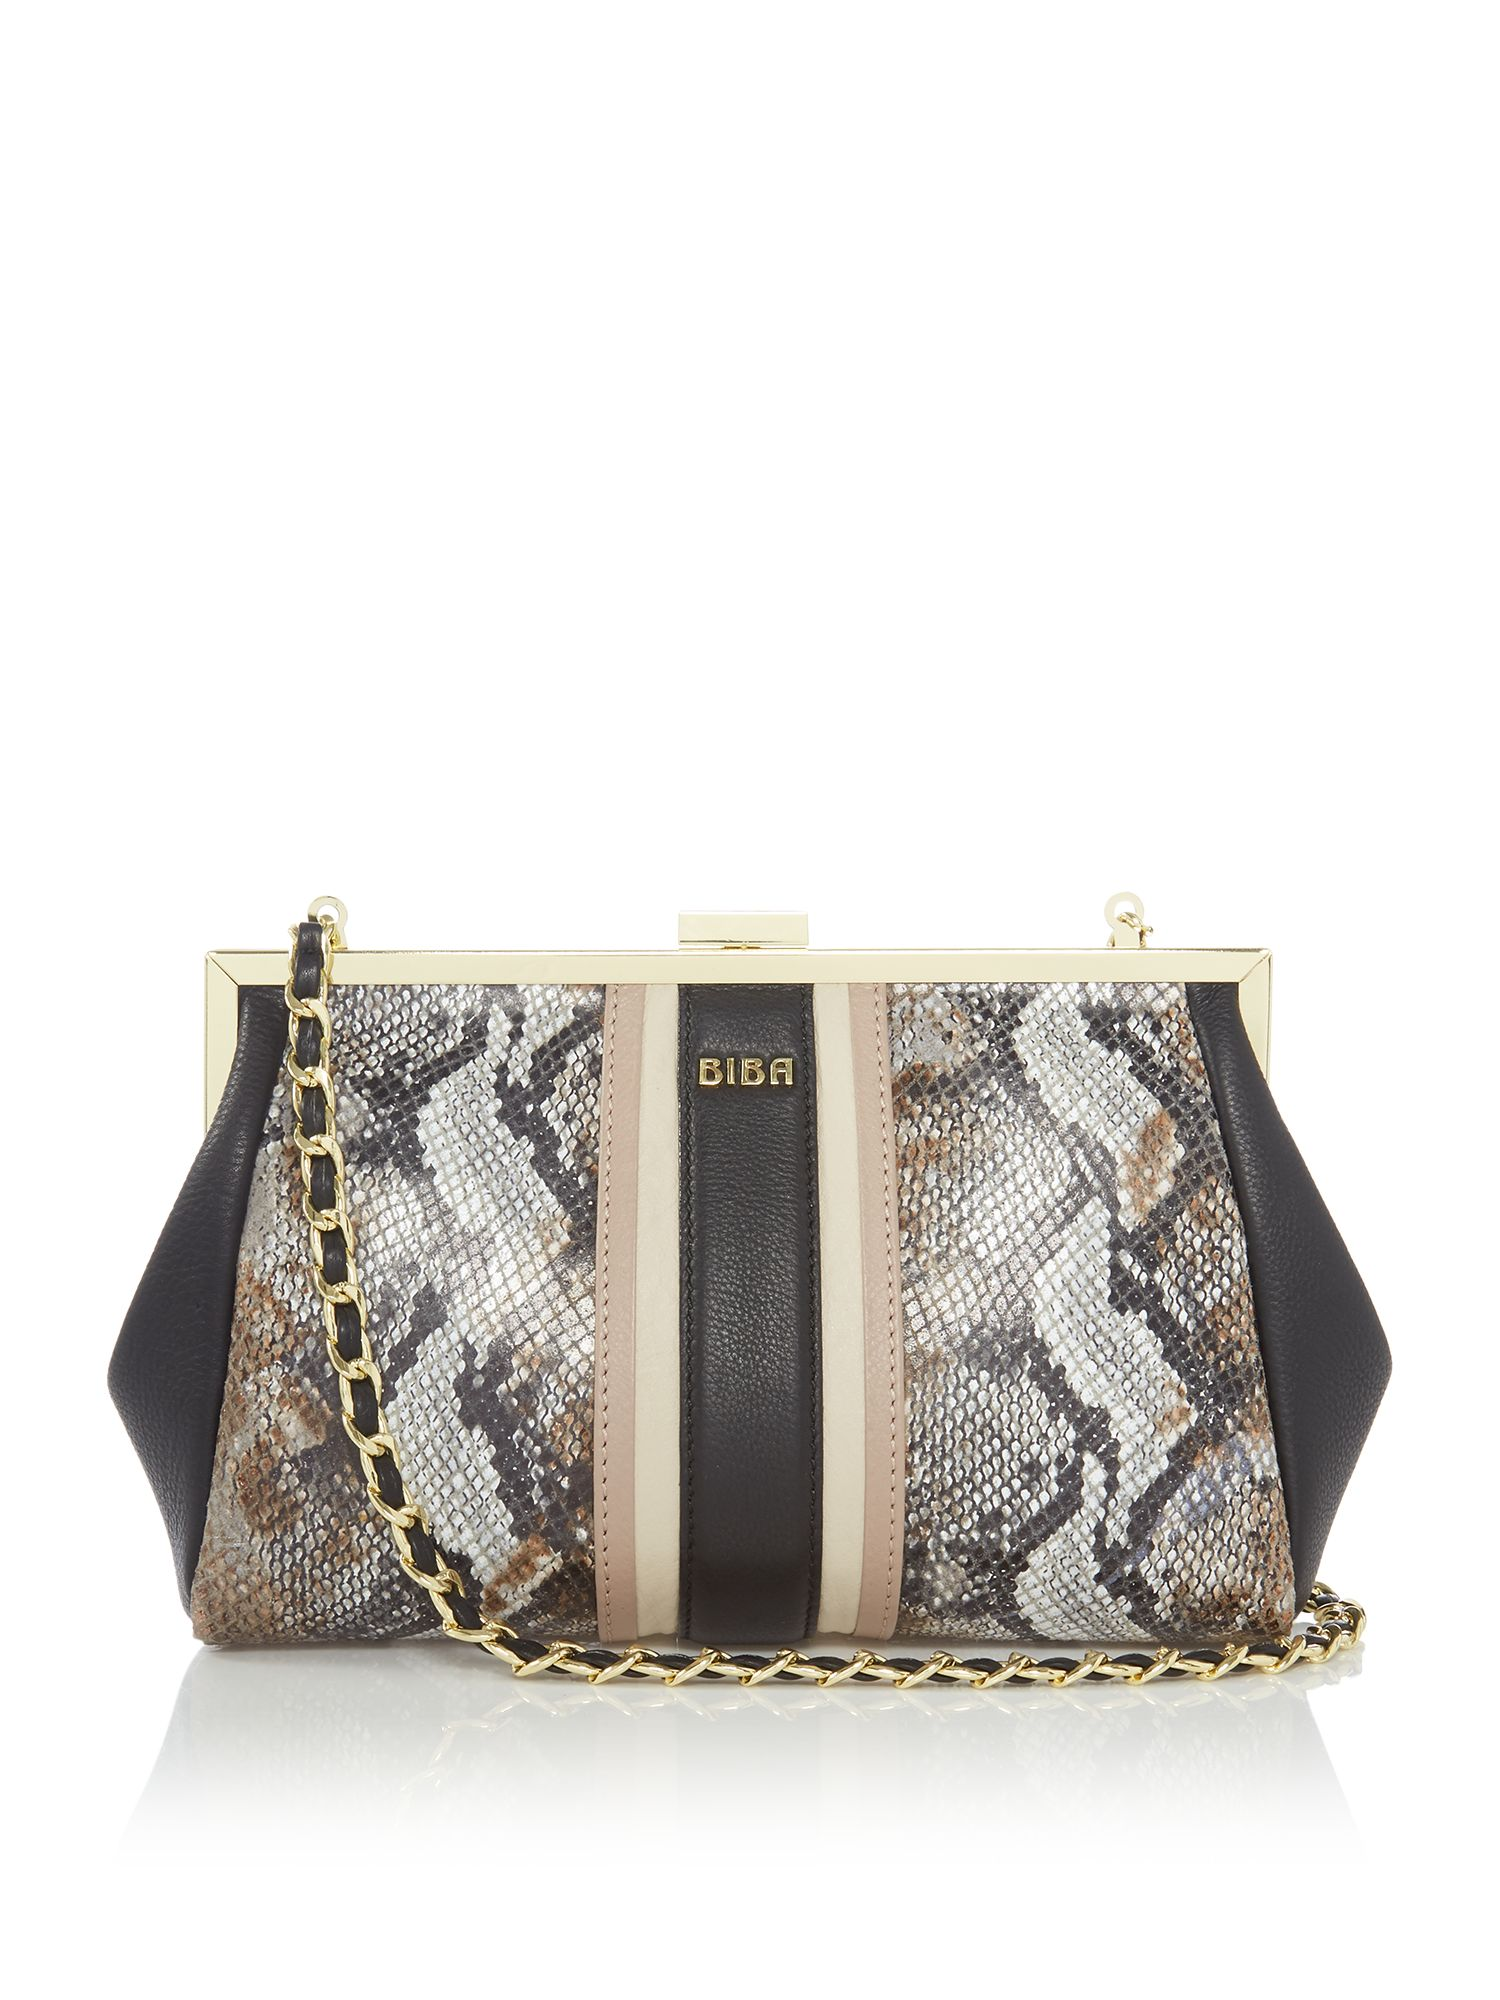 Biba Paige Frame Leather Clutch Bag, Multi-Coloured